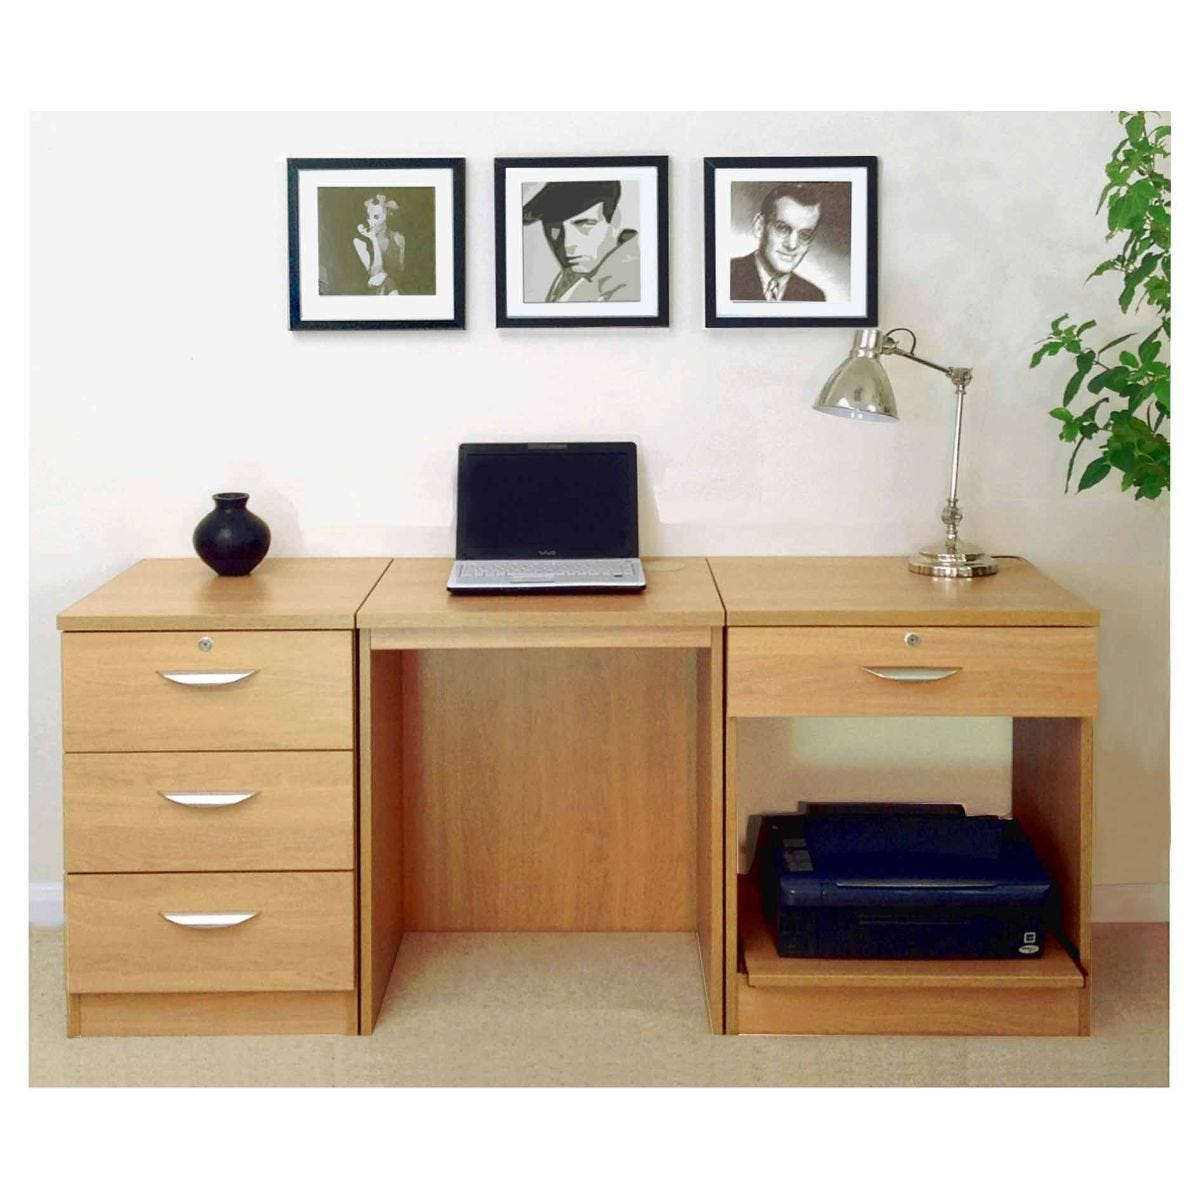 R White Home Office Furniture Desk Set, Classic Oak Wood Grain